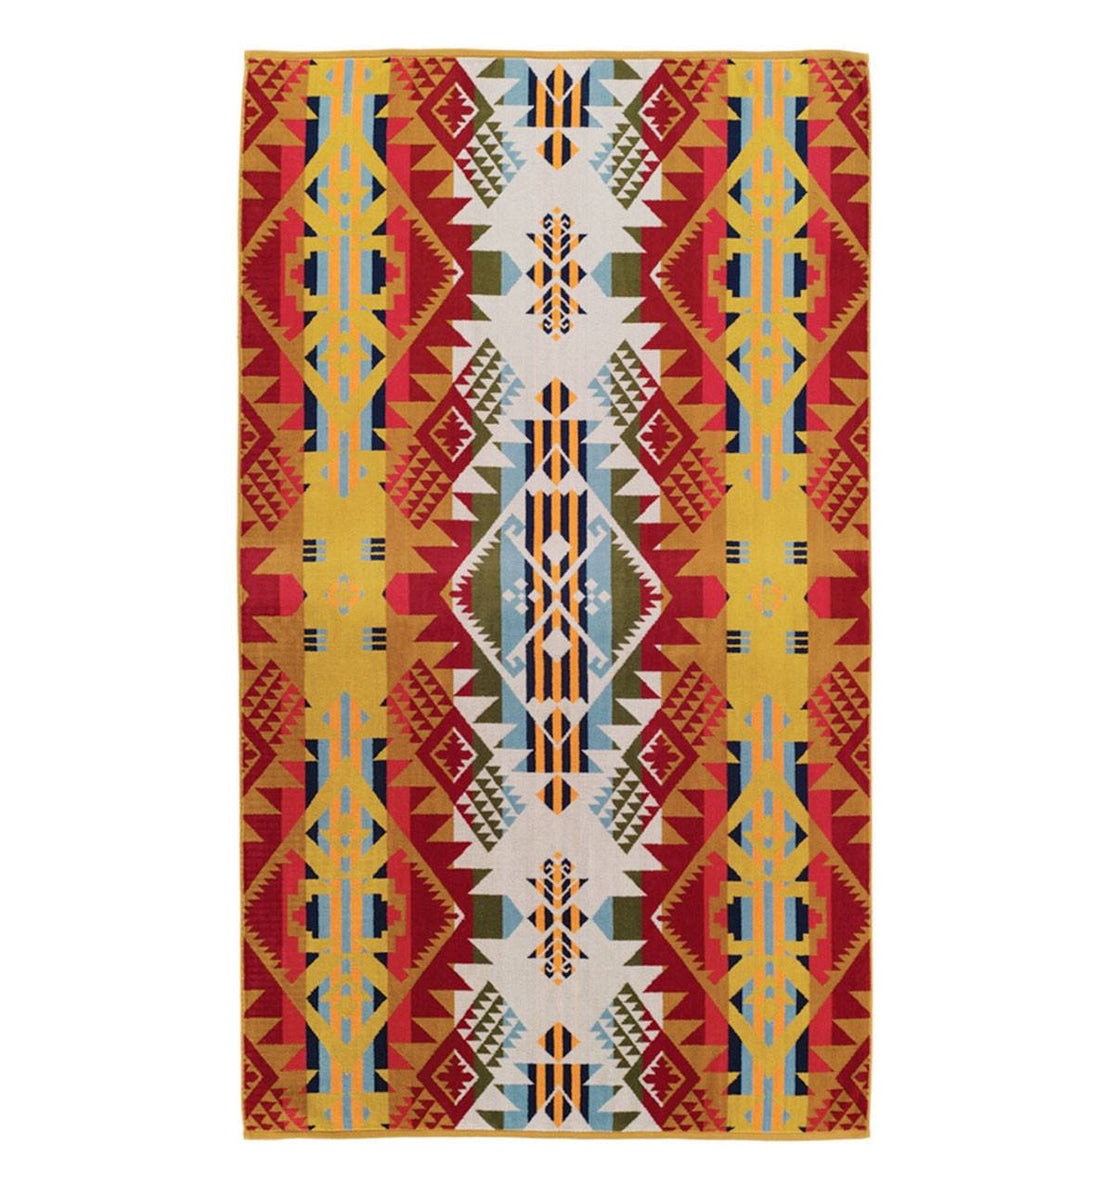 Pendleton Towel- Journey West - Houseware - Iron and Resin